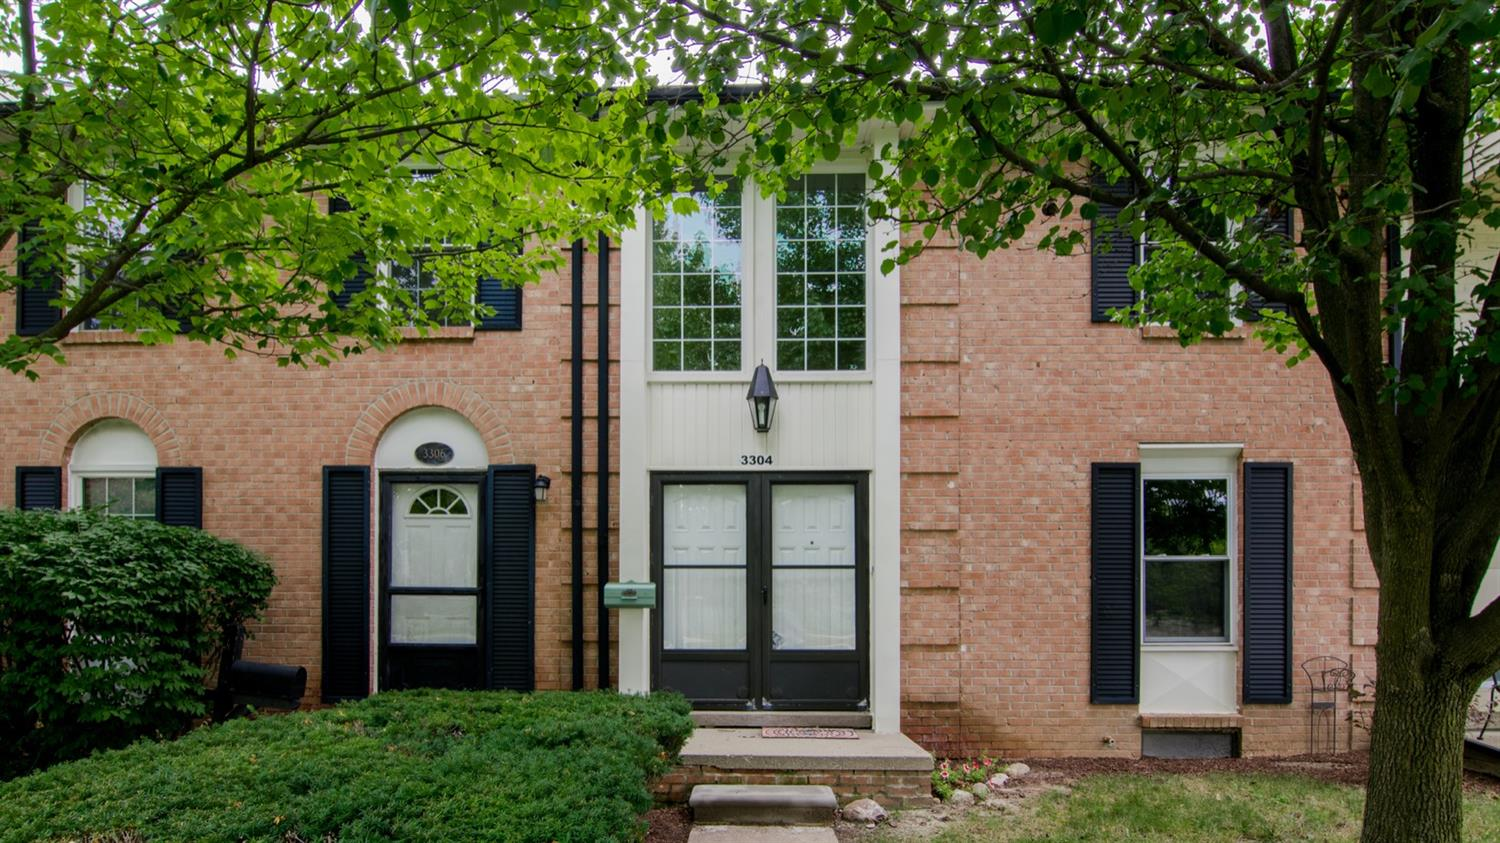 MLS# 3268361 - 3304  Green Road Ann Arbor MI 48105